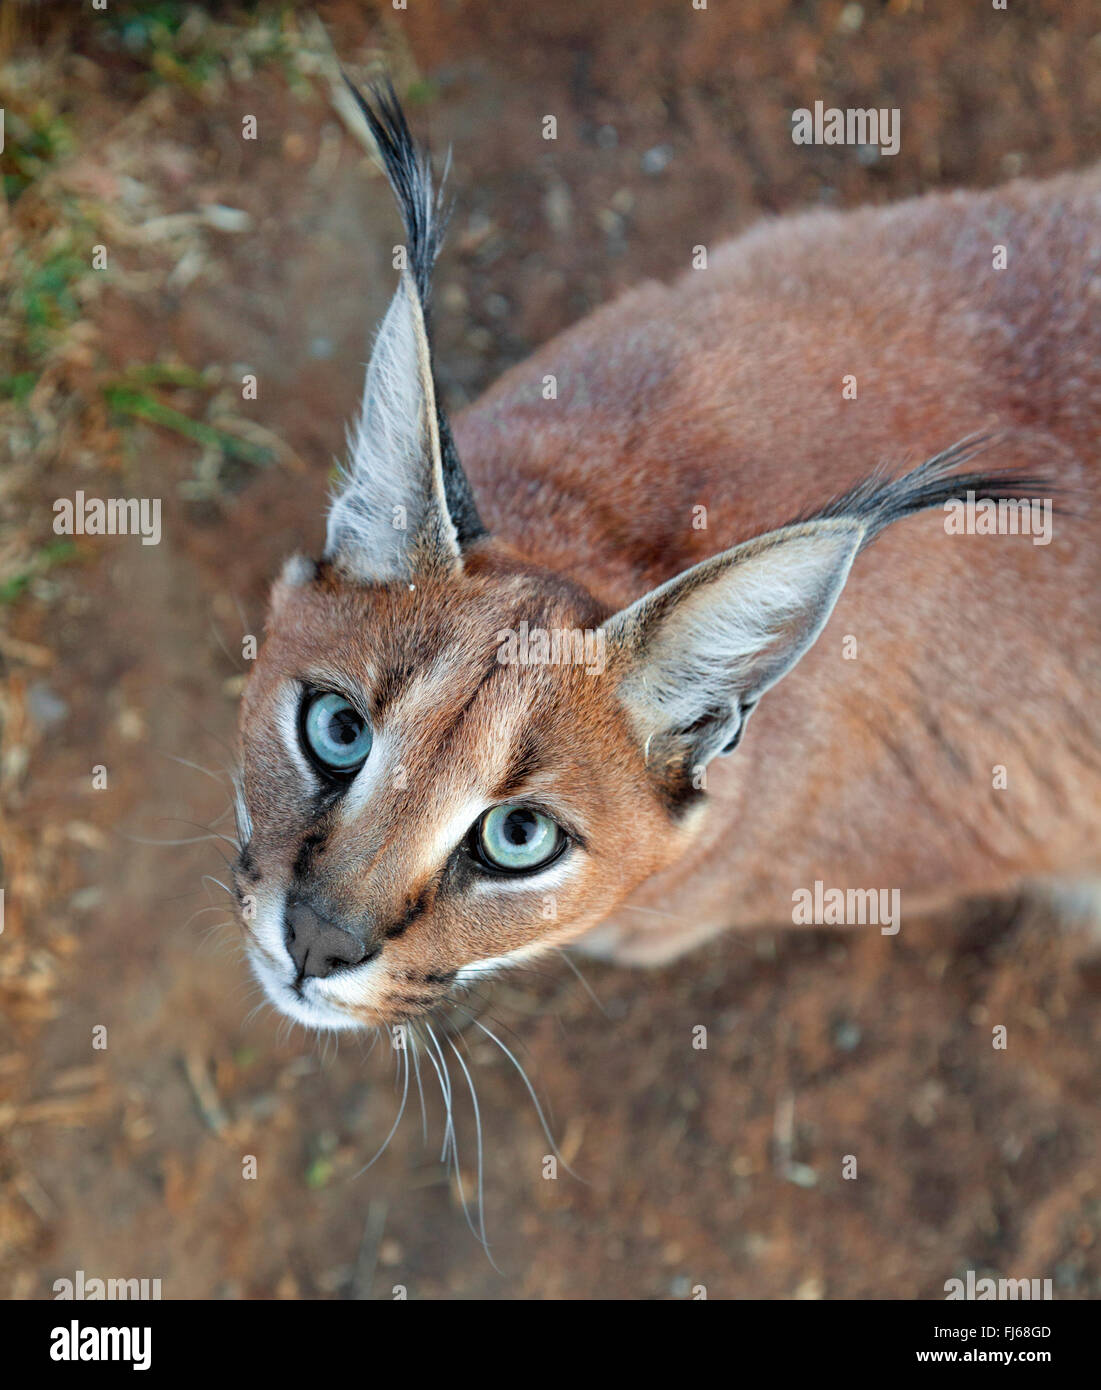 caracal (Caracal caracal, Felis caracal), looking up, portrait, South Africa - Stock Image